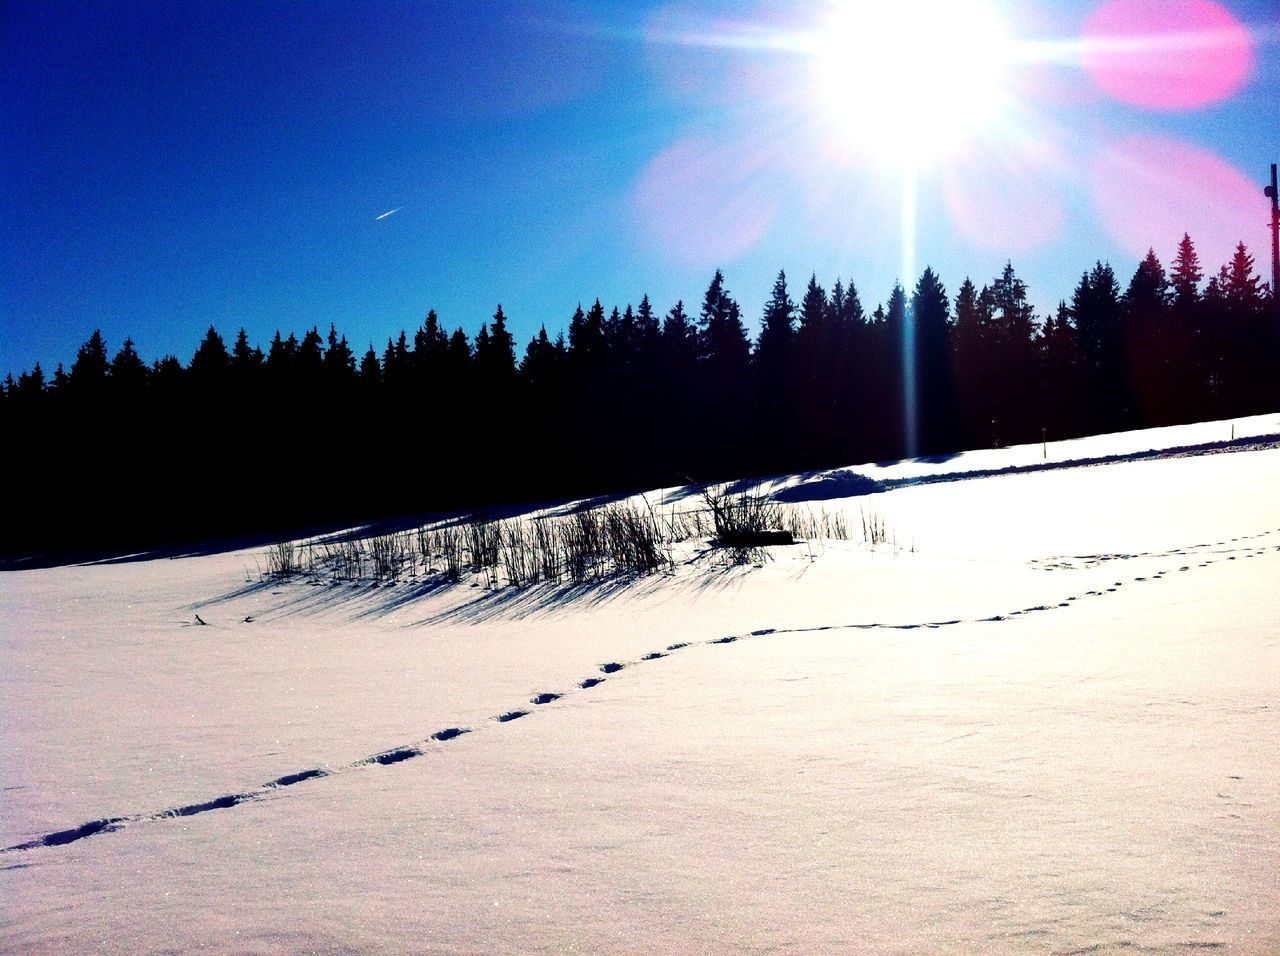 snow, winter, tree, cold temperature, sunlight, sunbeam, nature, sun, lens flare, tranquil scene, tranquility, landscape, beauty in nature, scenics, outdoors, no people, sky, day, clear sky